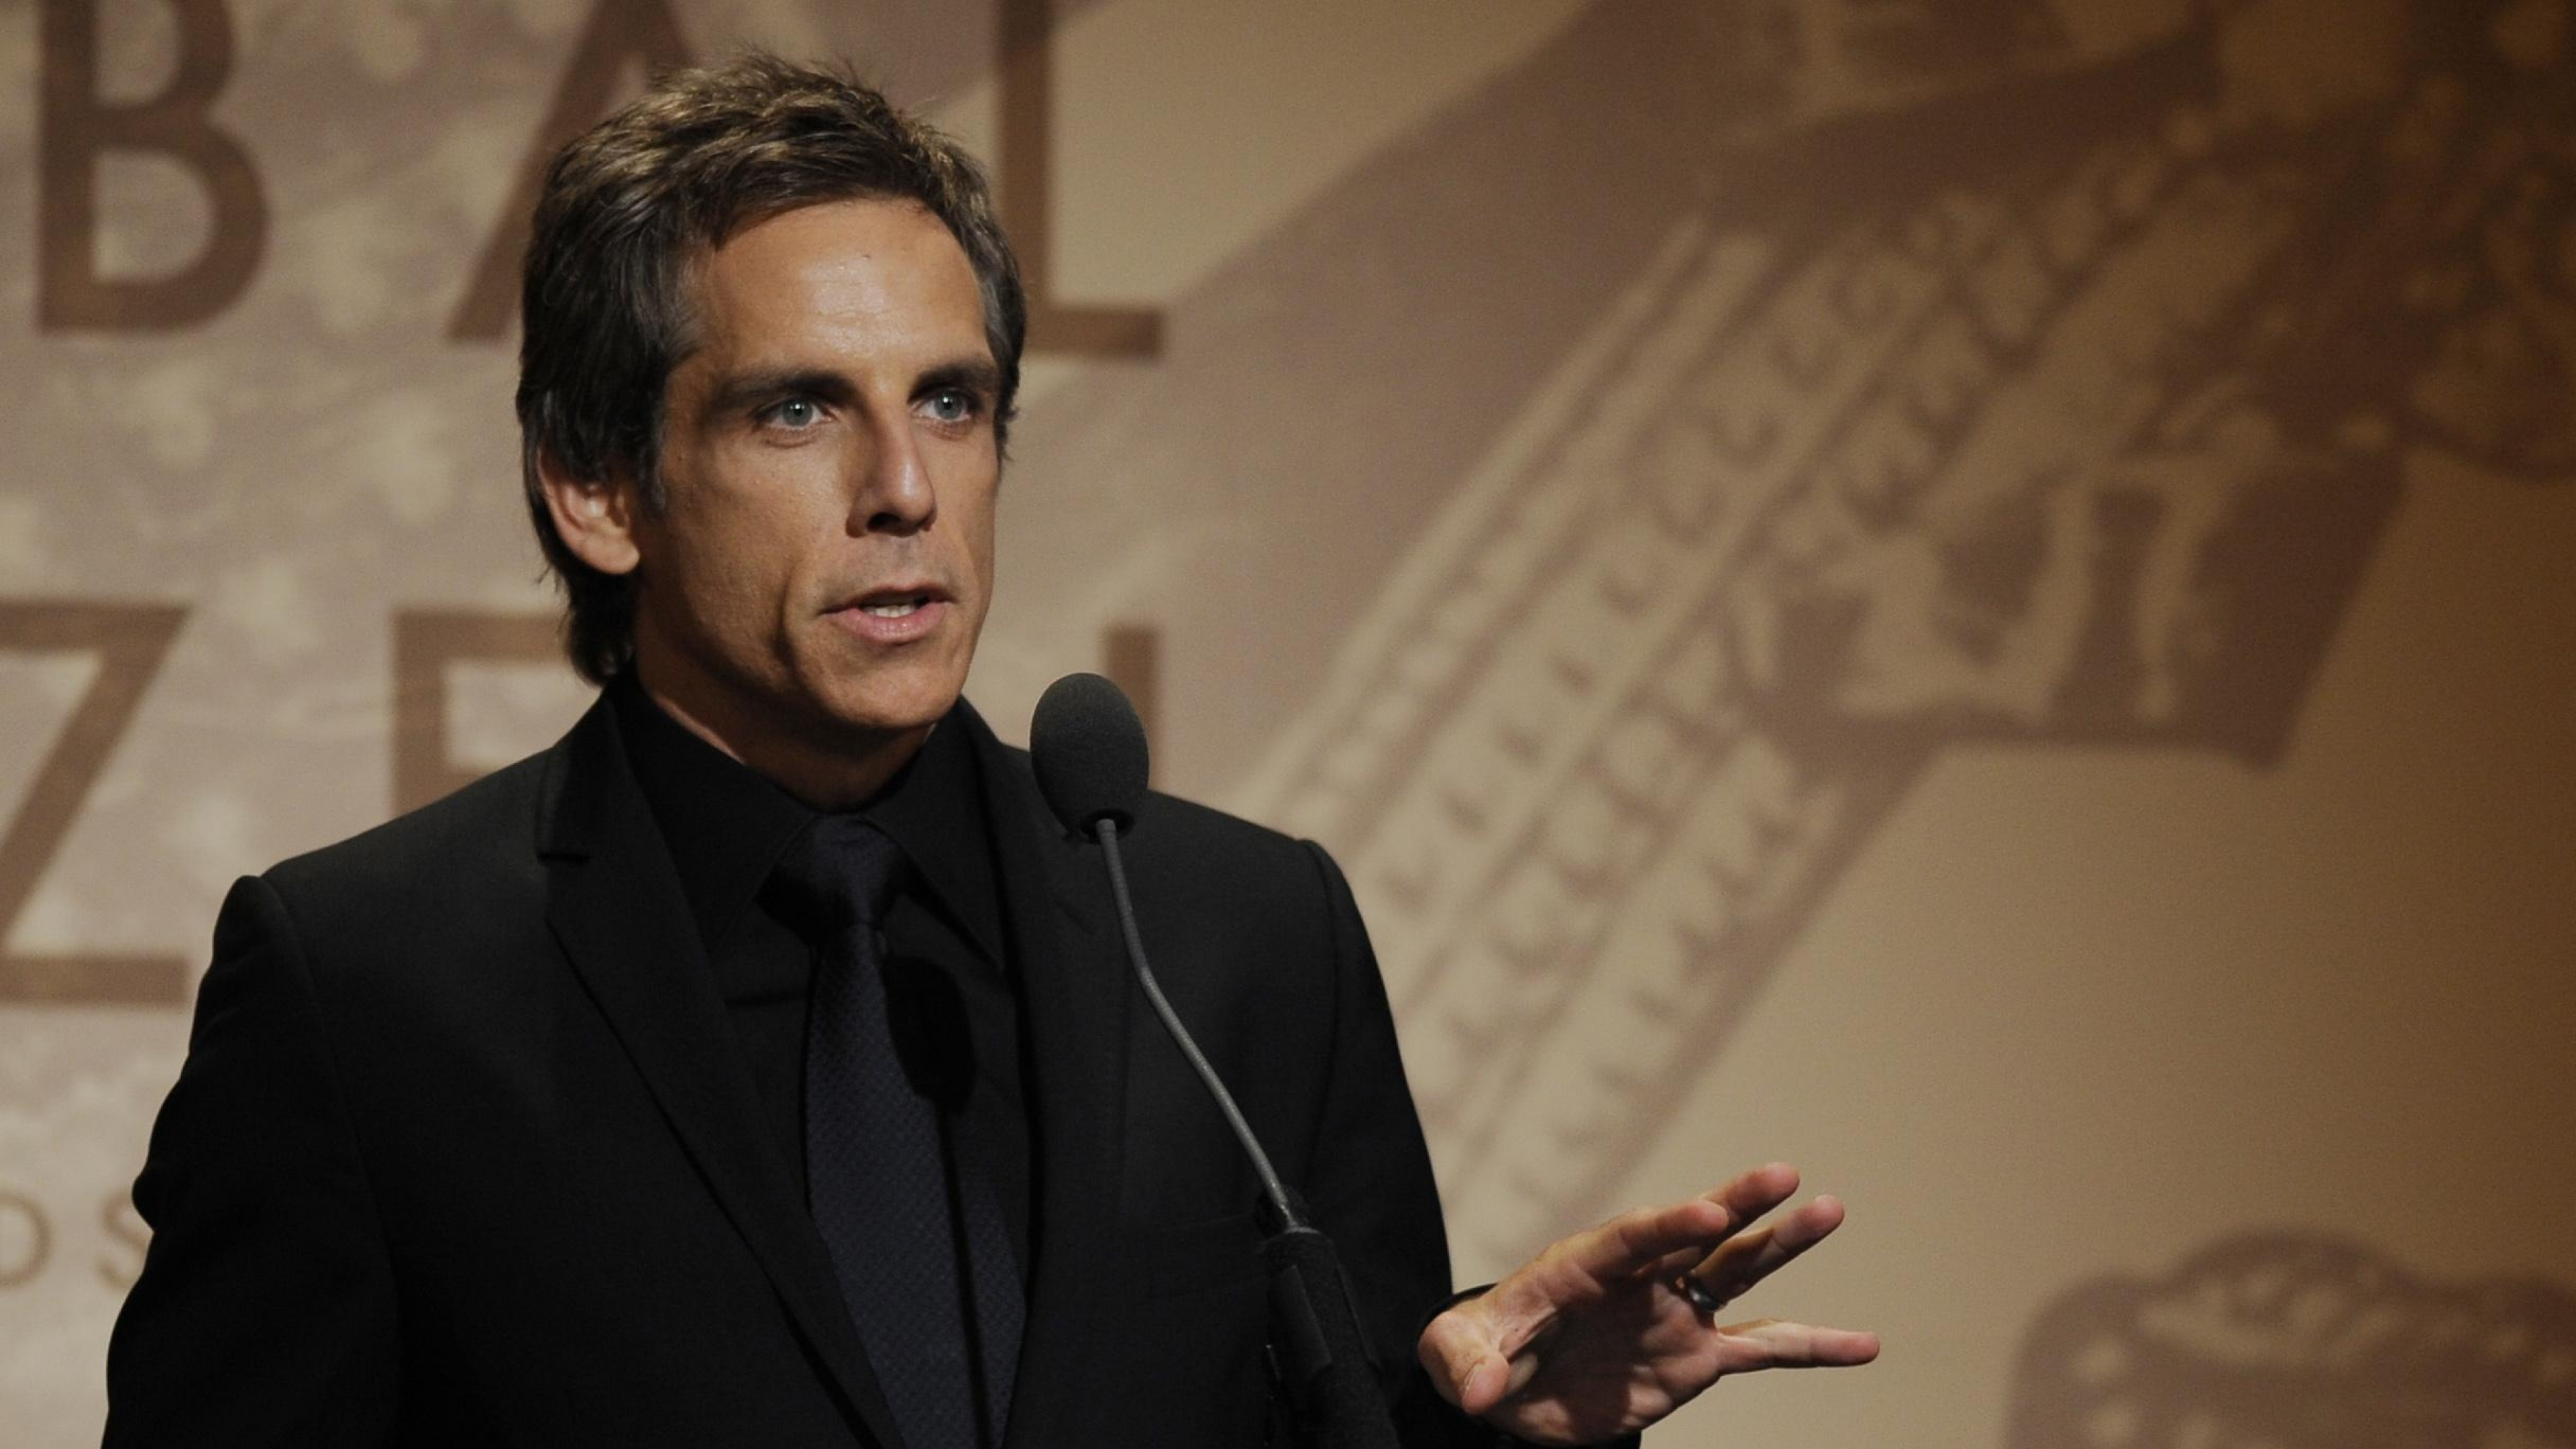 ben_stiller_brown_hair_speech_speaker_podium_33970_3840x2160